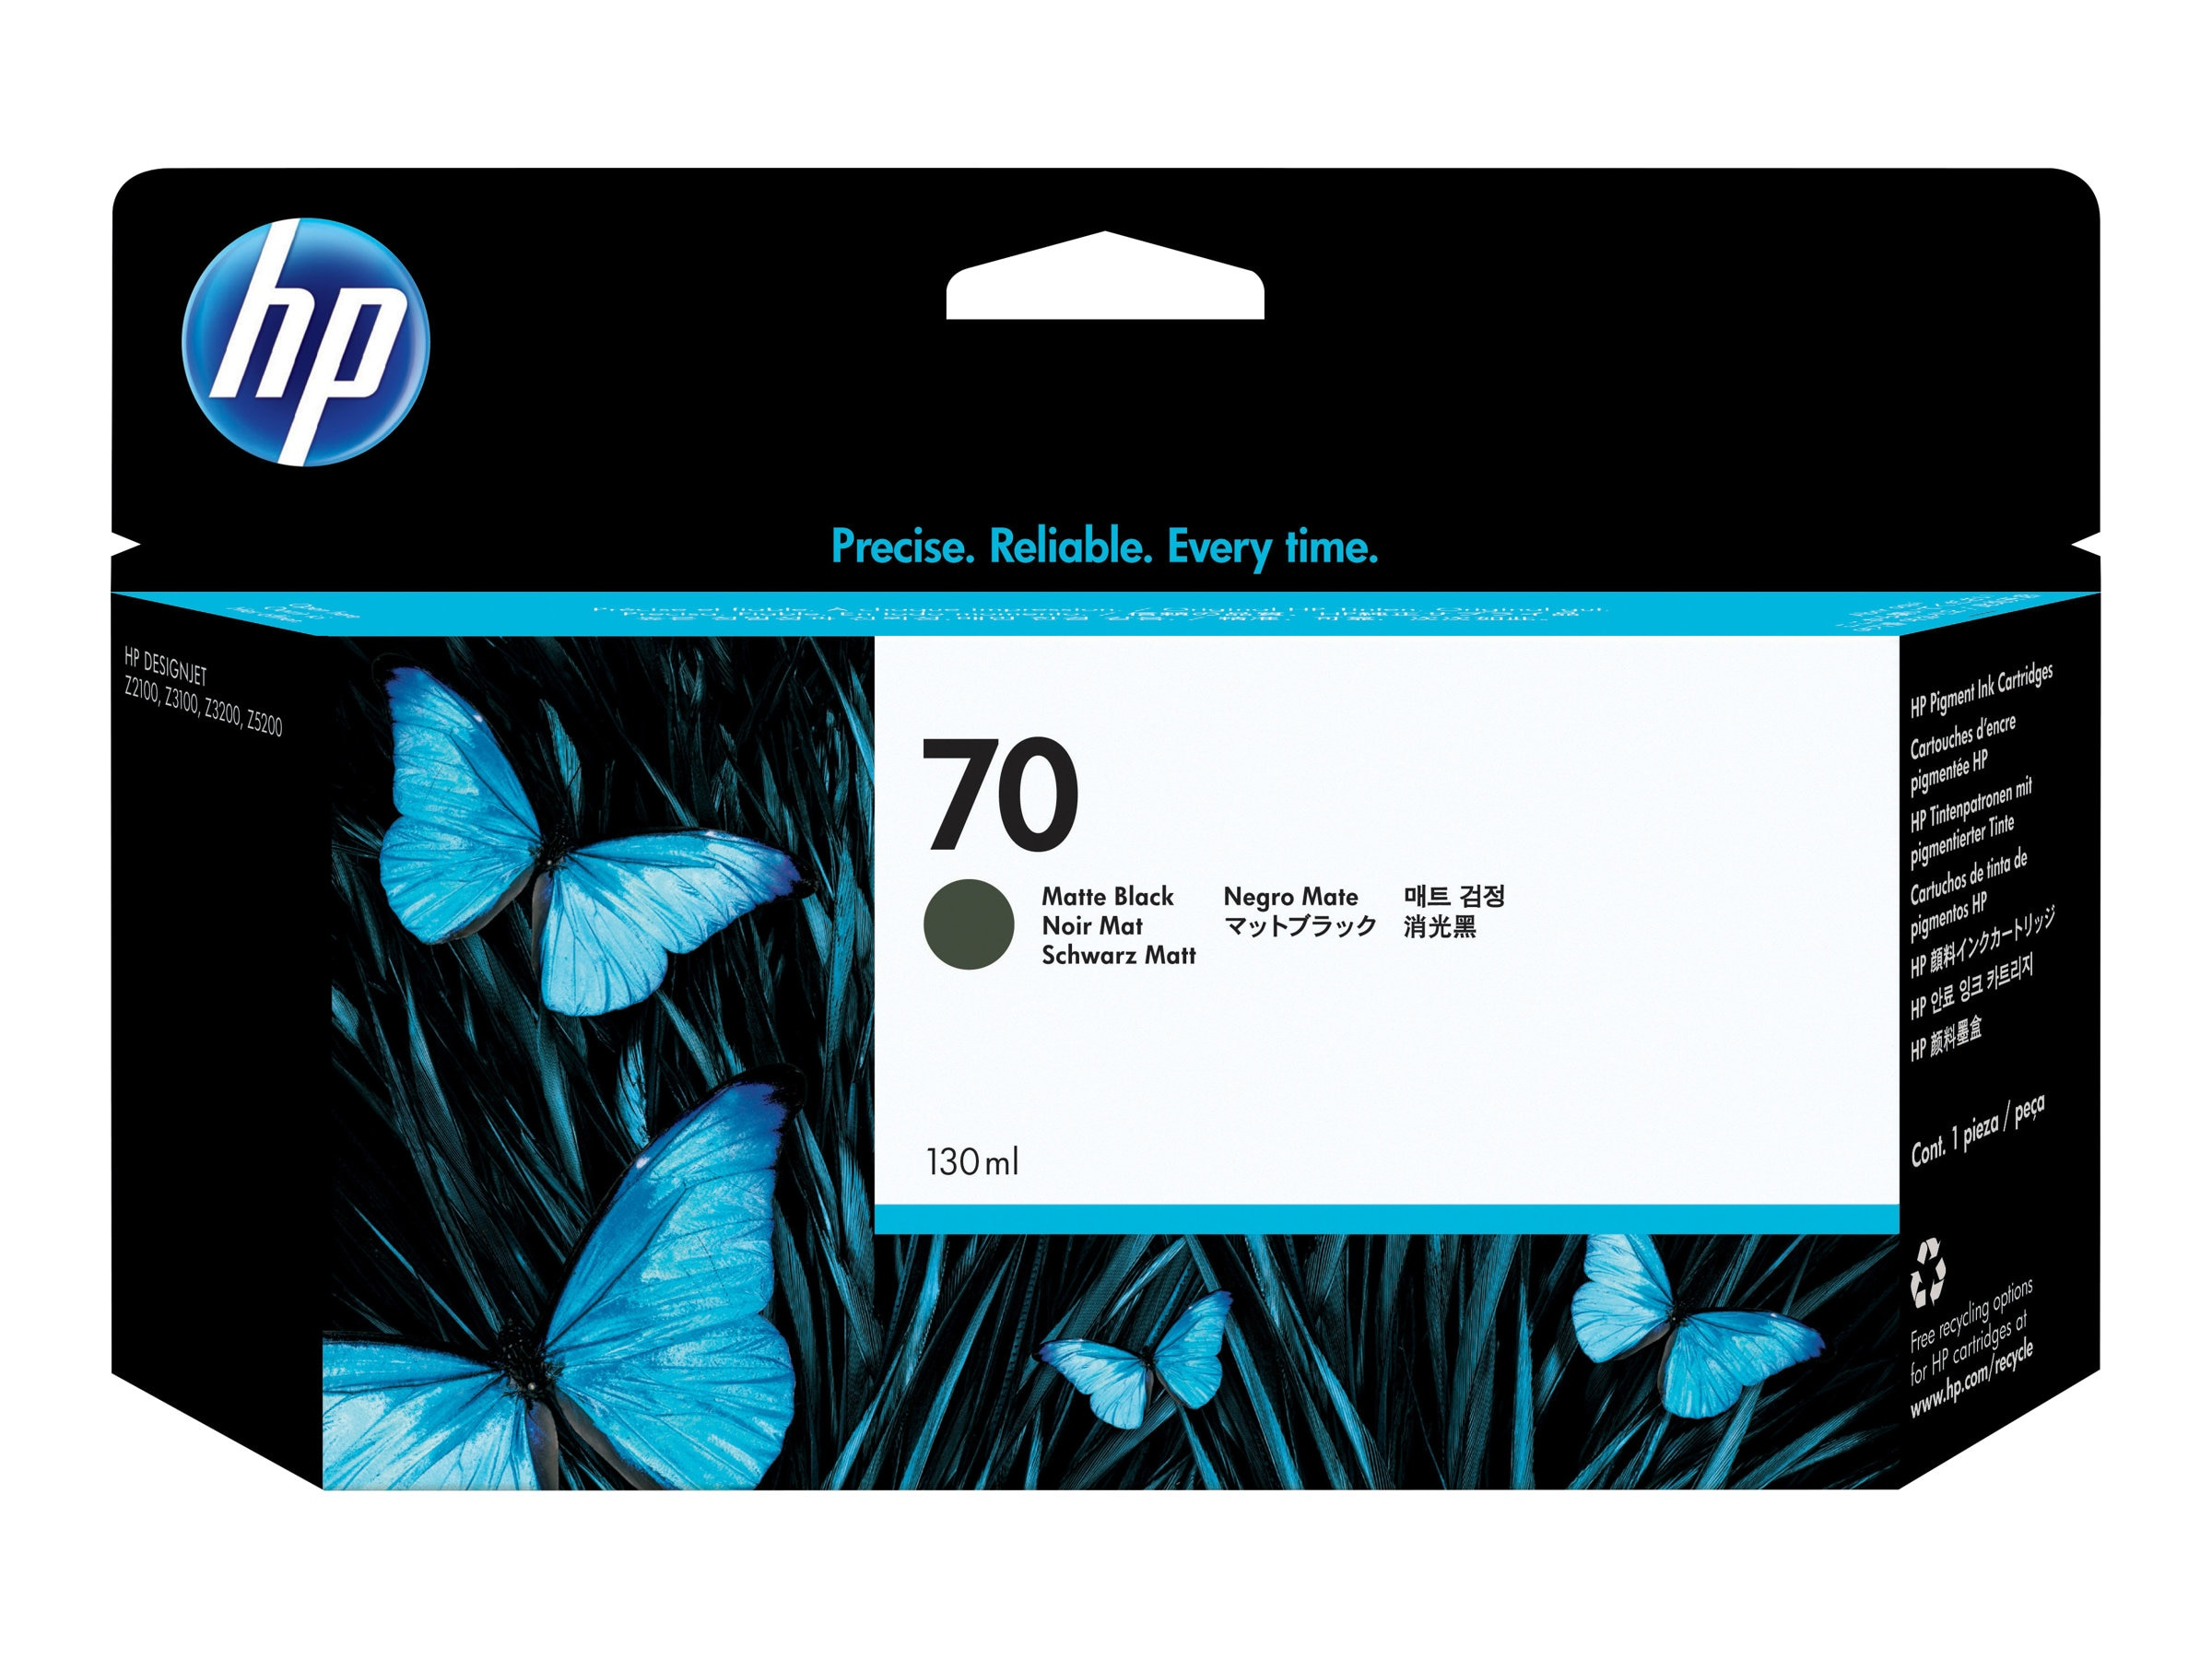 HP 70 Matte Black Ink Cartridge for HP DesignJet Z2100 & Z3100 Printers